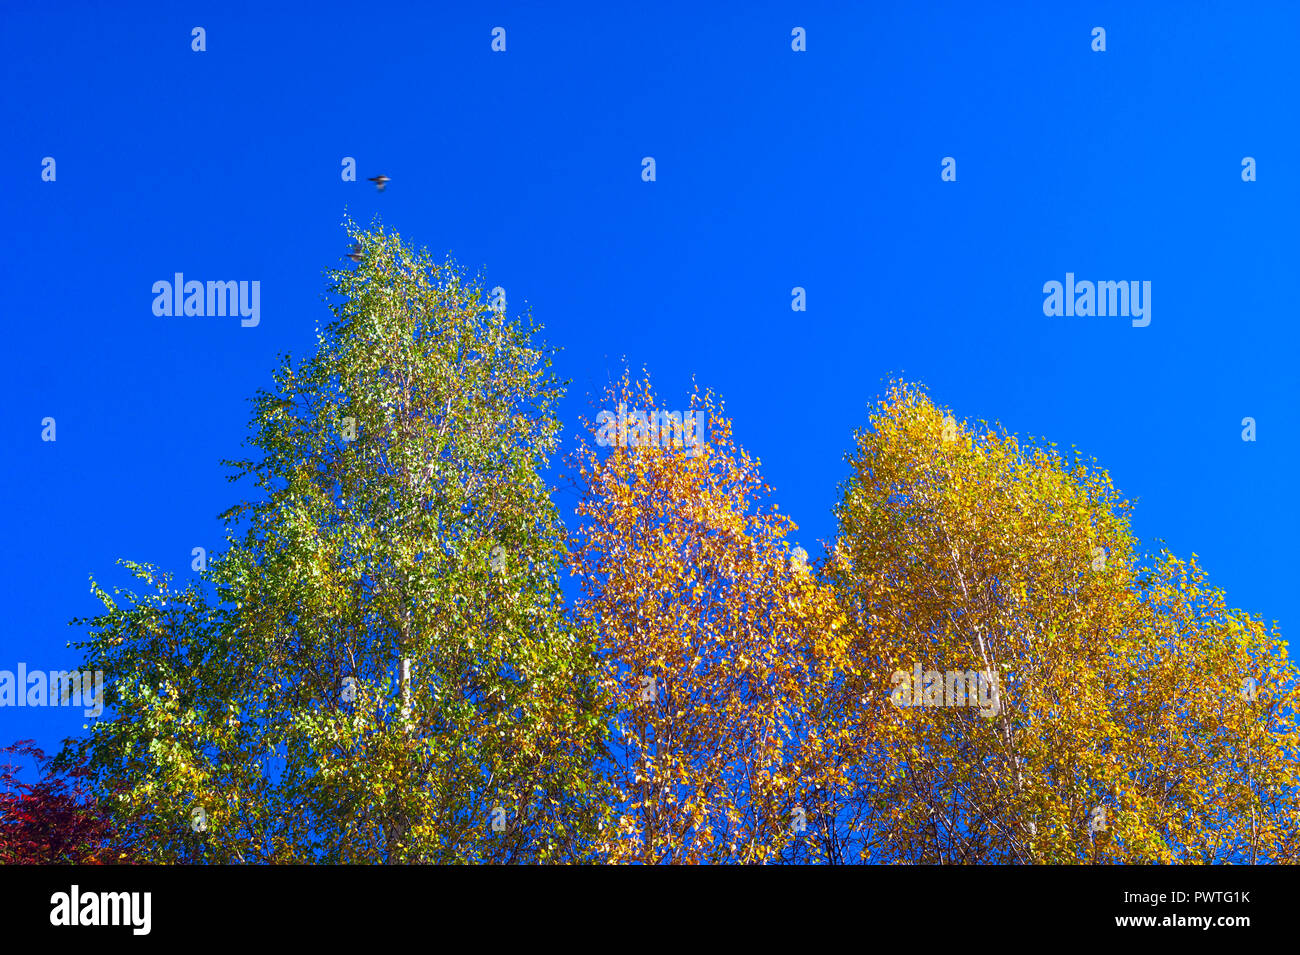 Looking Up The Birch Tree Tops Against Blue Sky On A Sunny Fall Day. A Bird Flying Over. - Stock Image